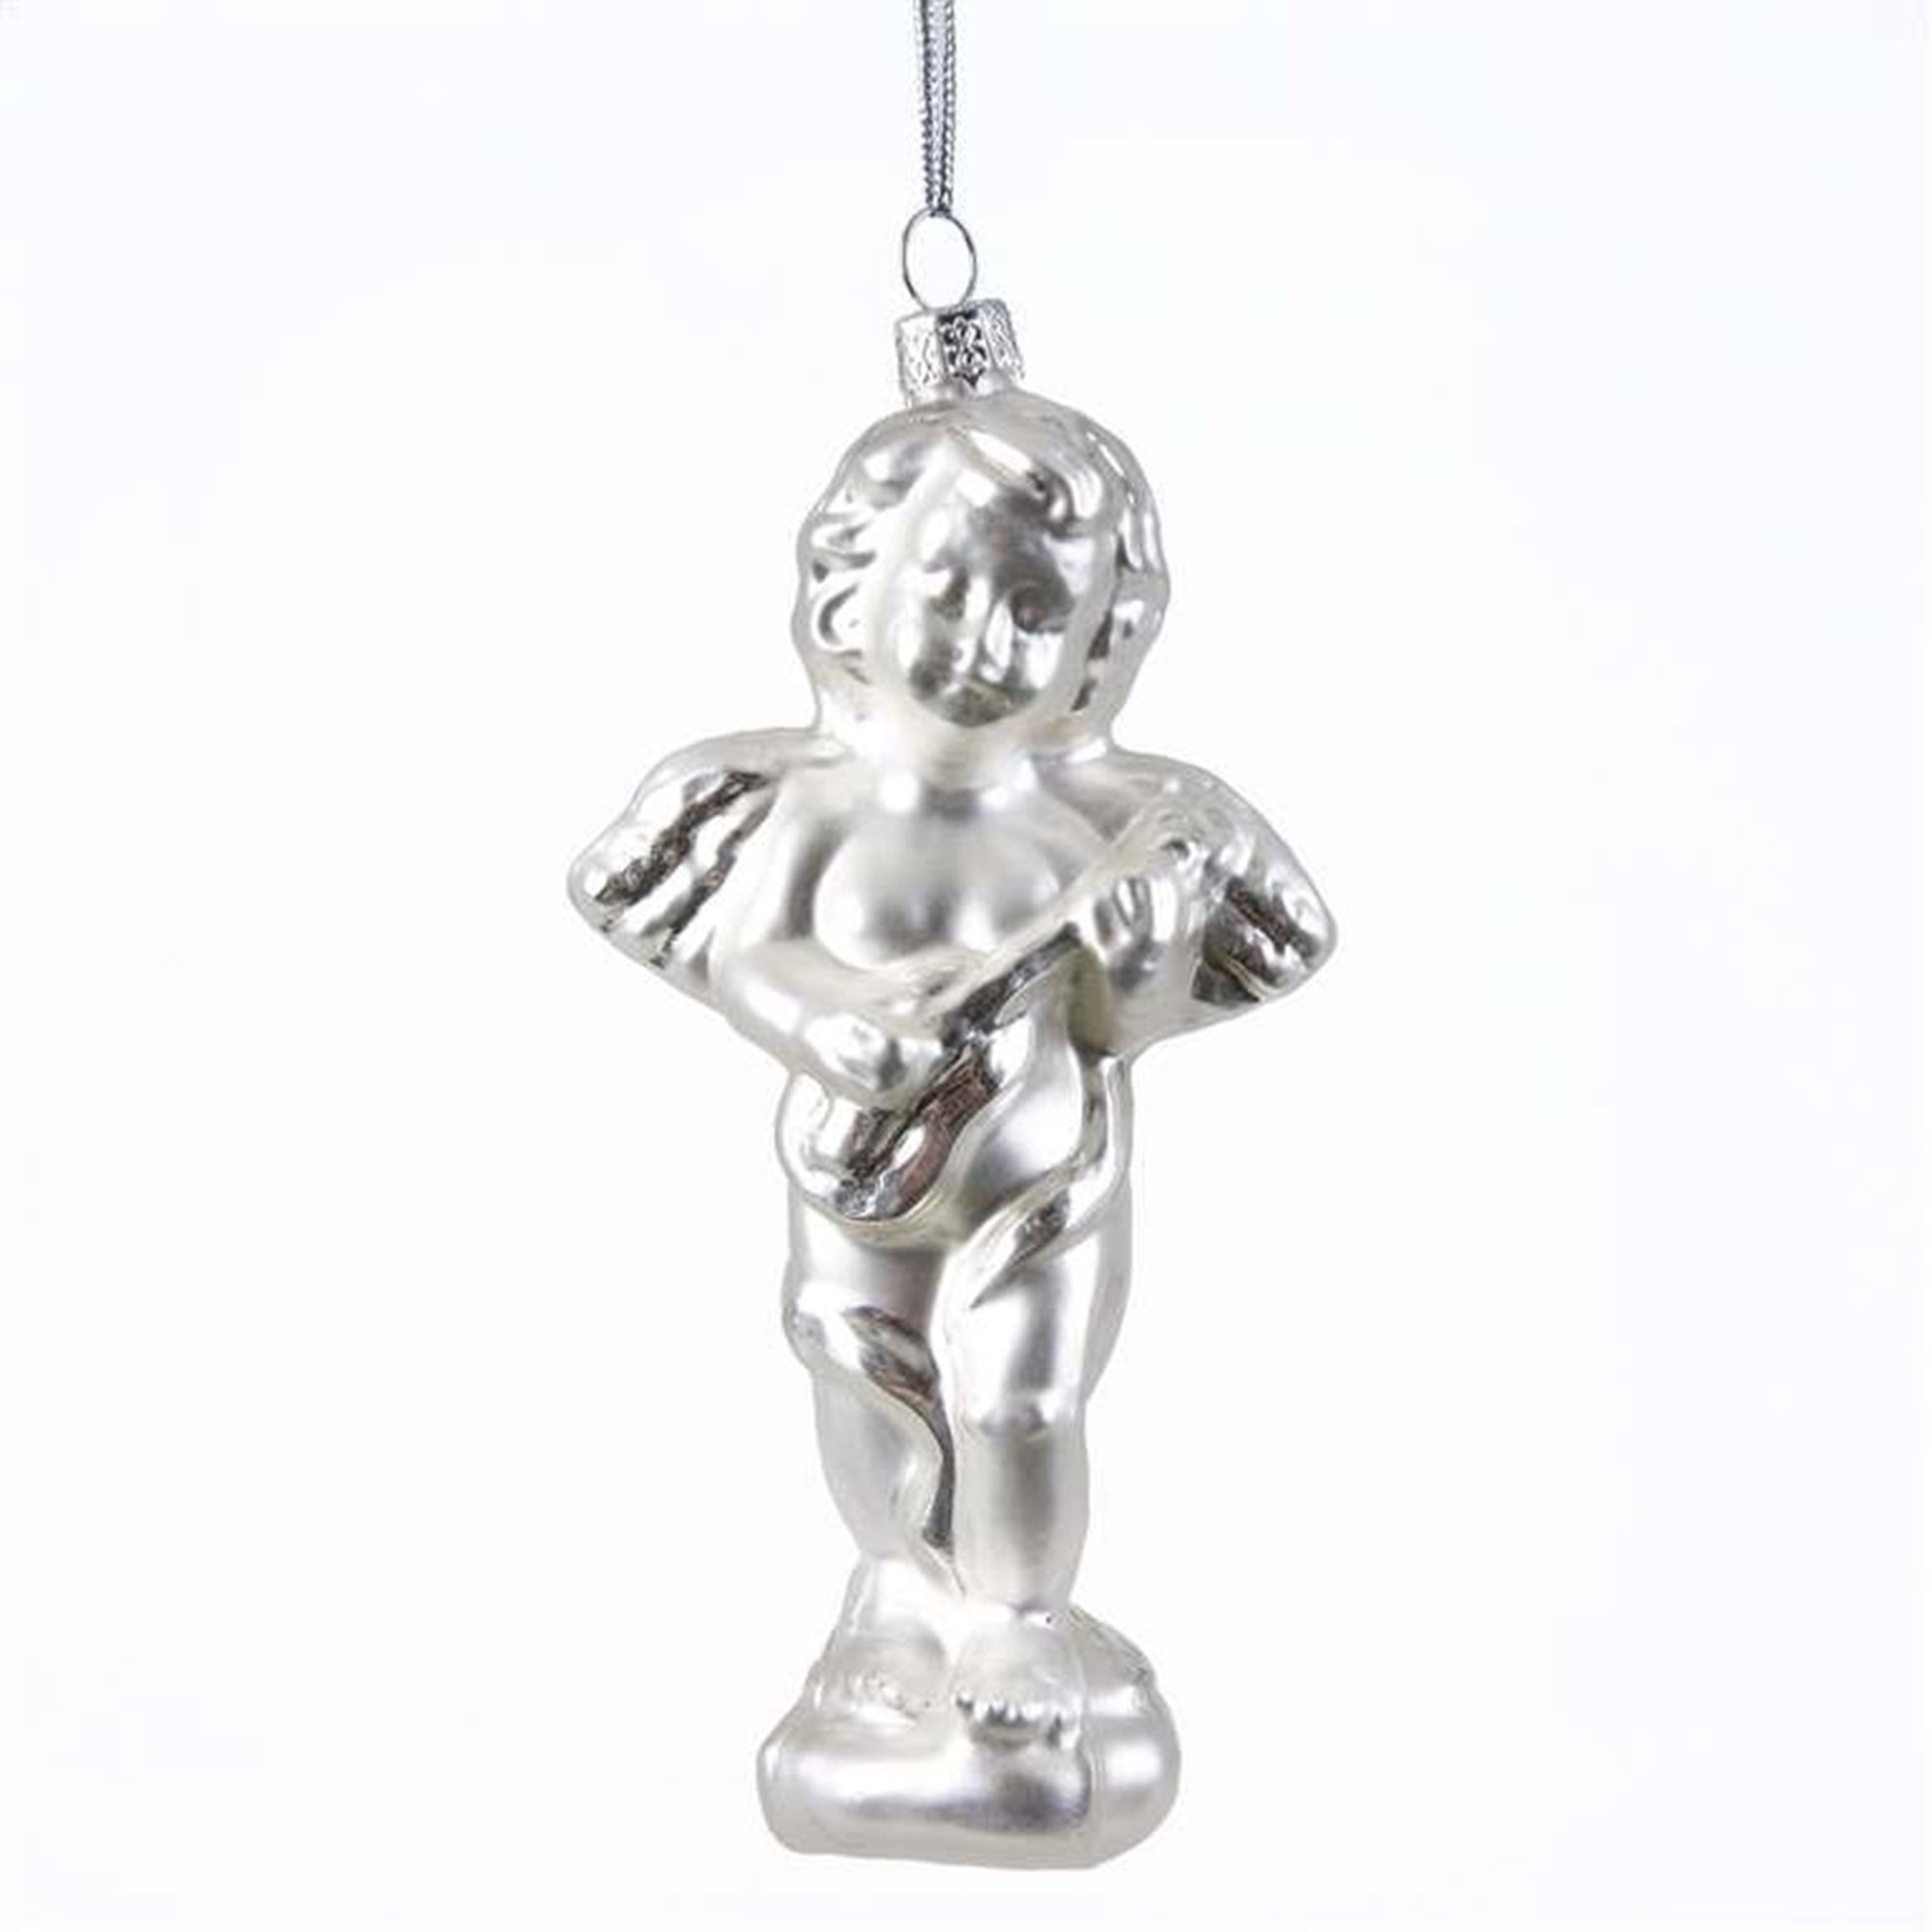 White Glass Cherub Statue Ornament